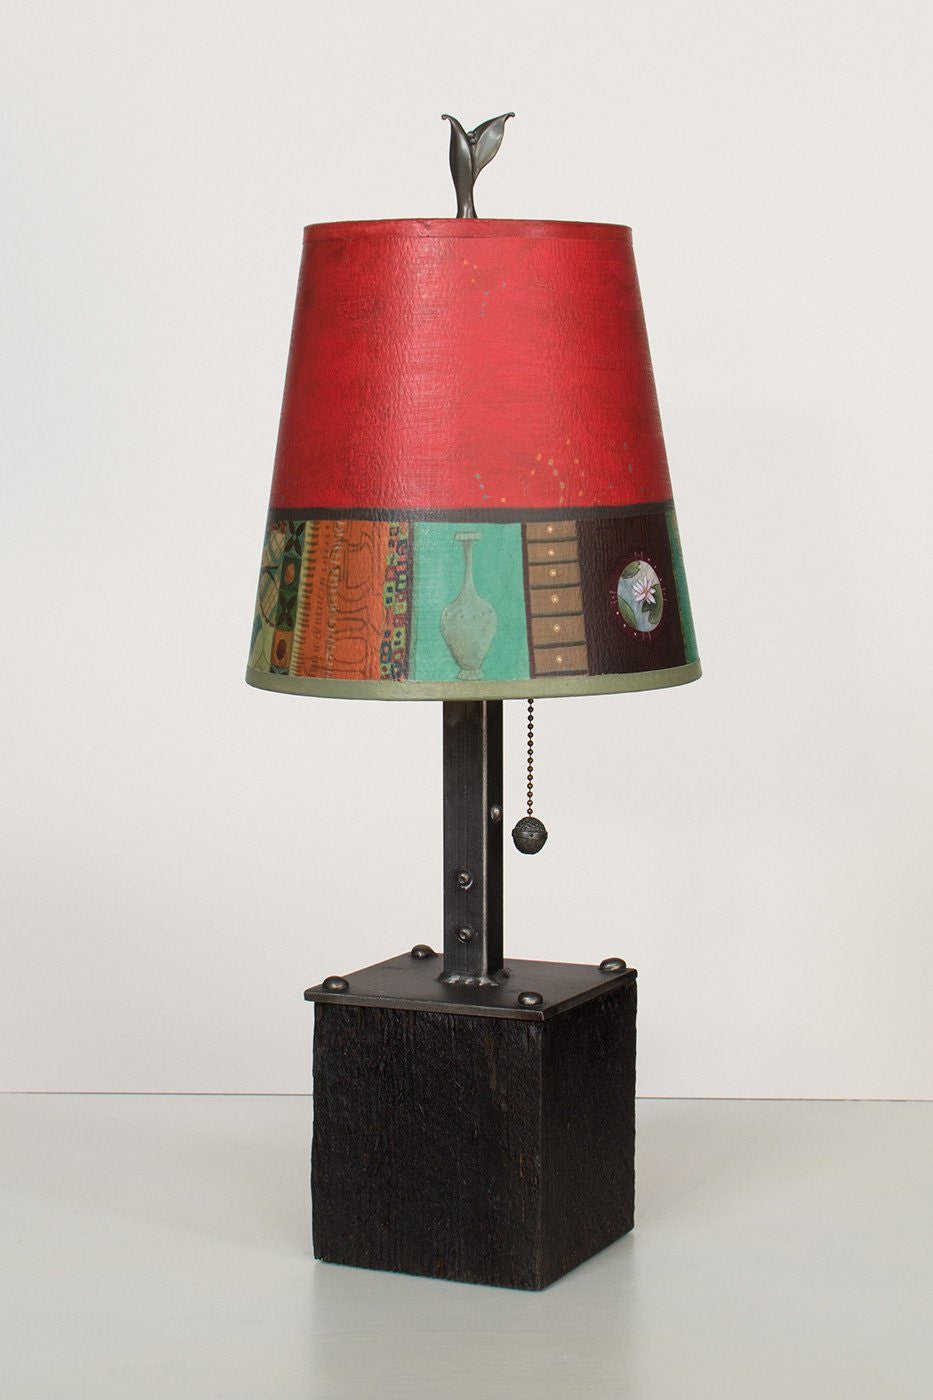 Steel Table Lamp on Reclaimed Wood with Small Drum Shade in Red Match Lit